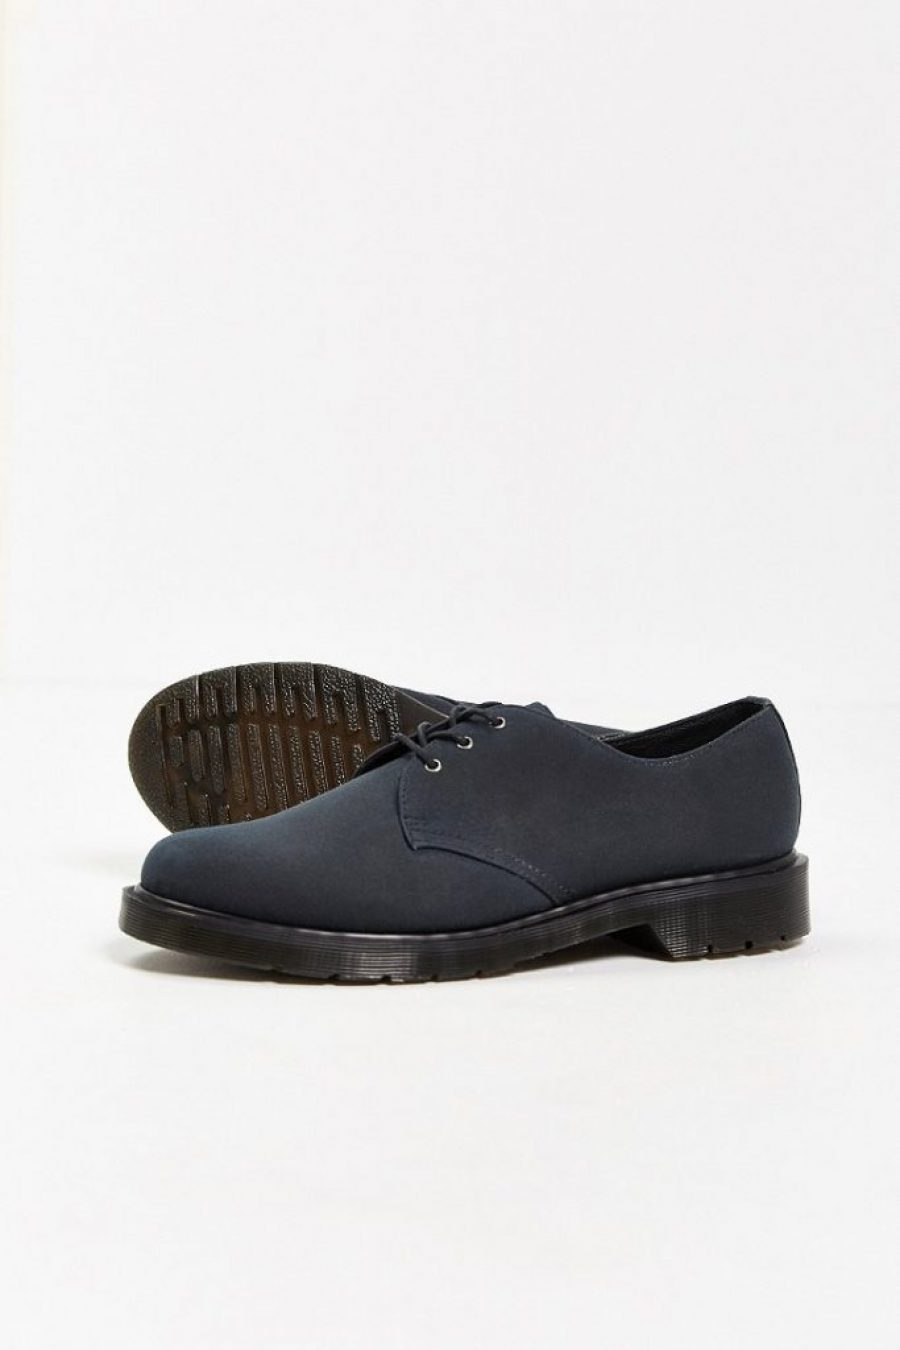 dr-martens-navy-lester-3-eye-gibson-shoe-blue-product-1-078160906-normal